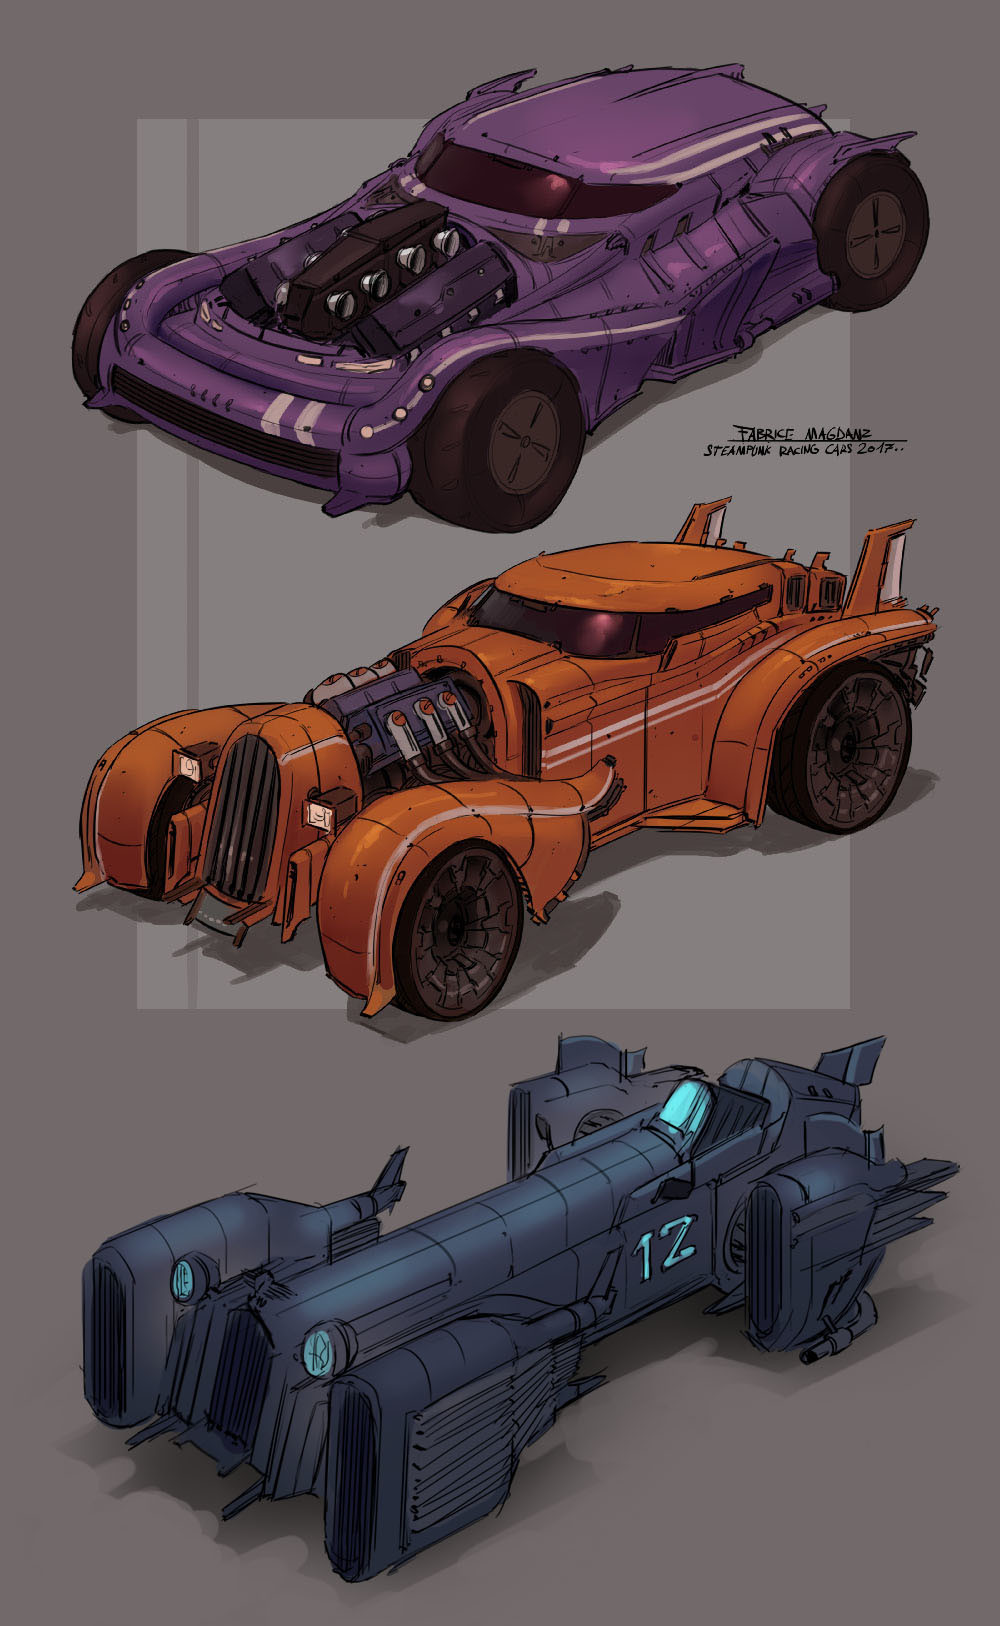 Artstation Steampunk Vehicle Concept Fabrice Magdanz